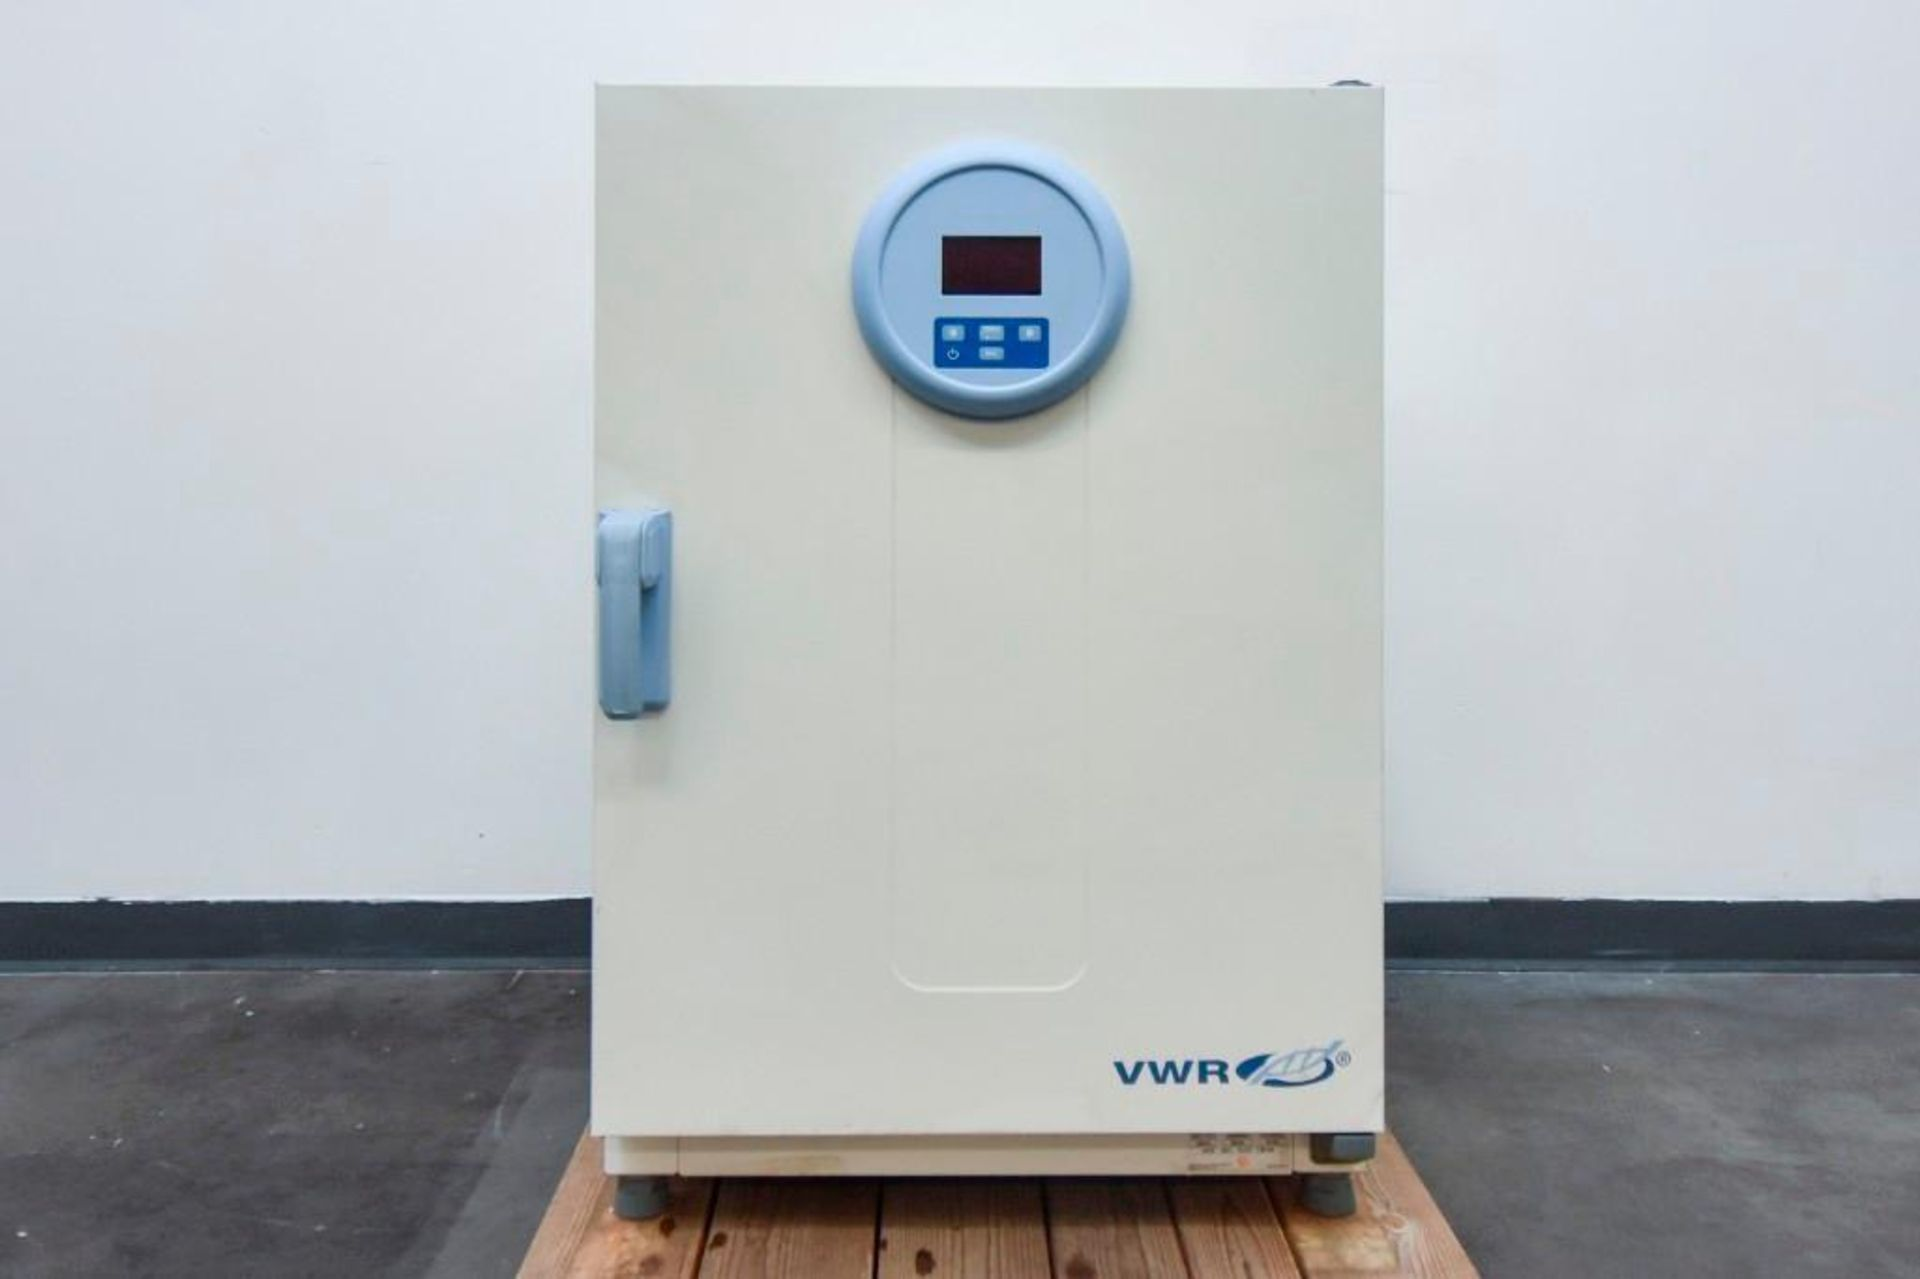 VWR Forced Air Oven